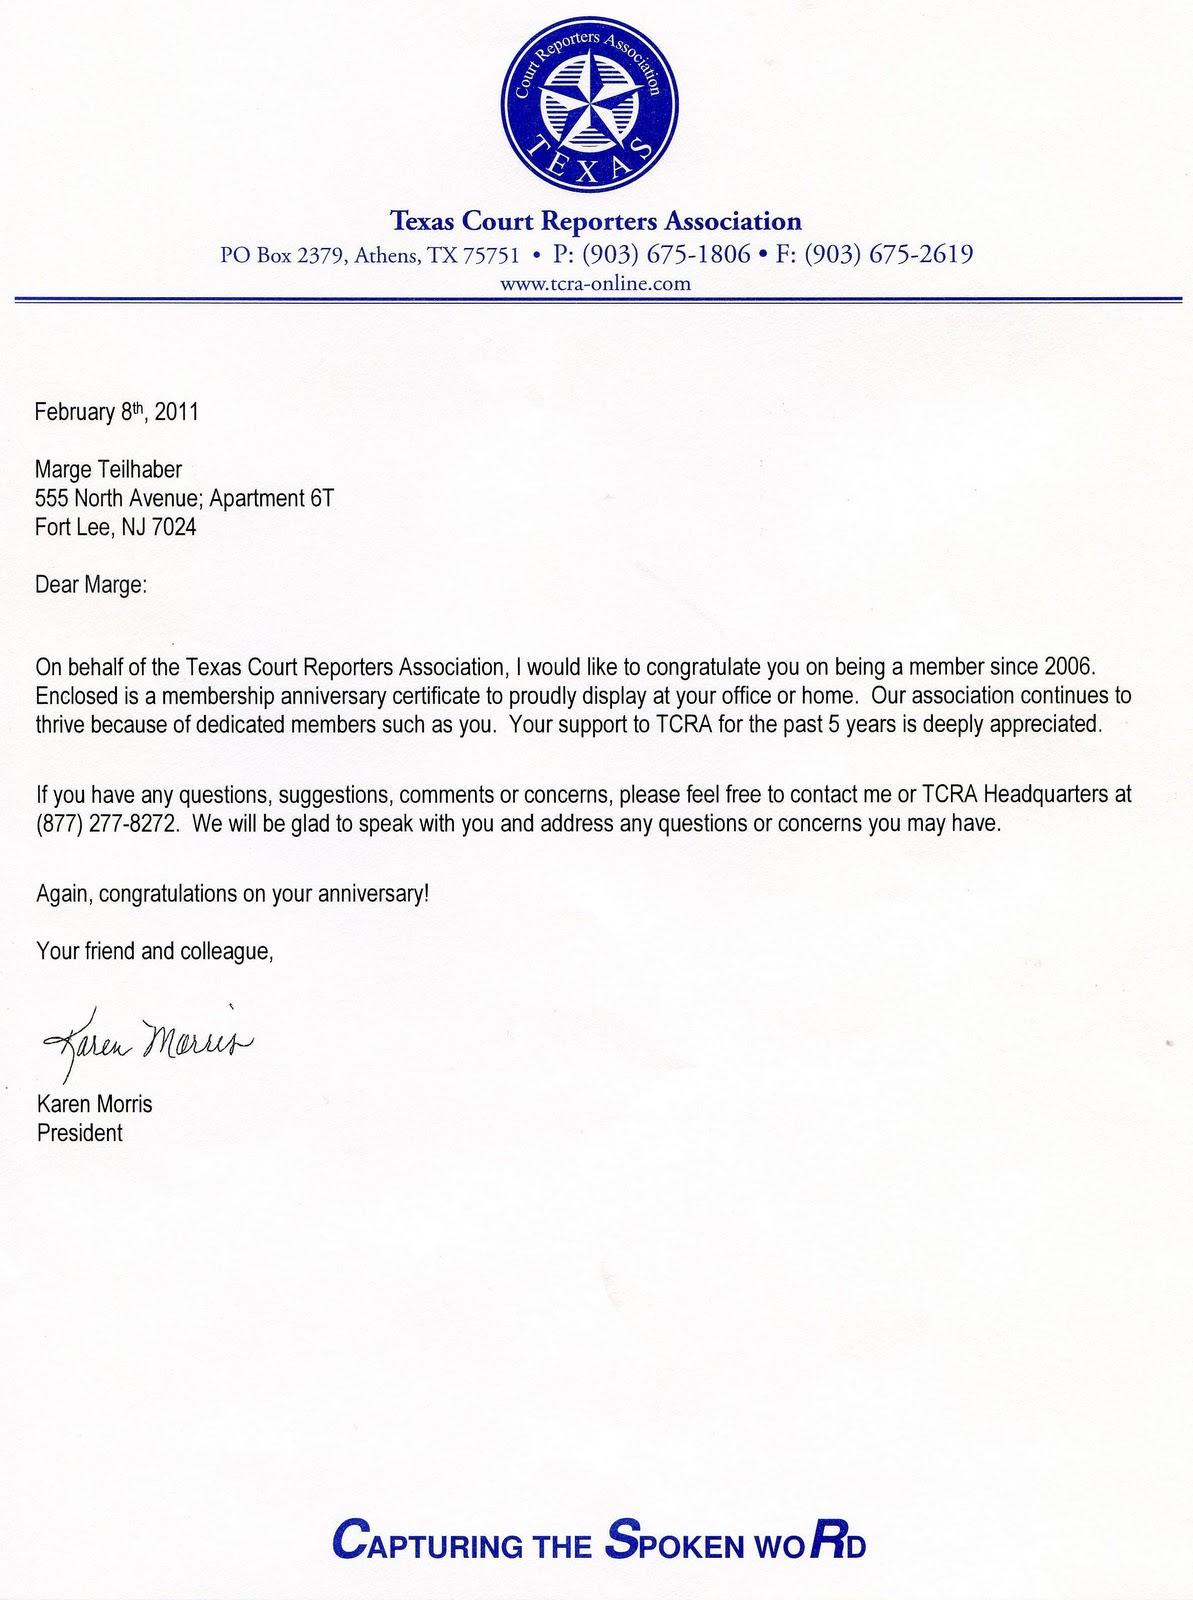 Marge Teilhaber Nyctnj Freelance Court Reporter Texas Court